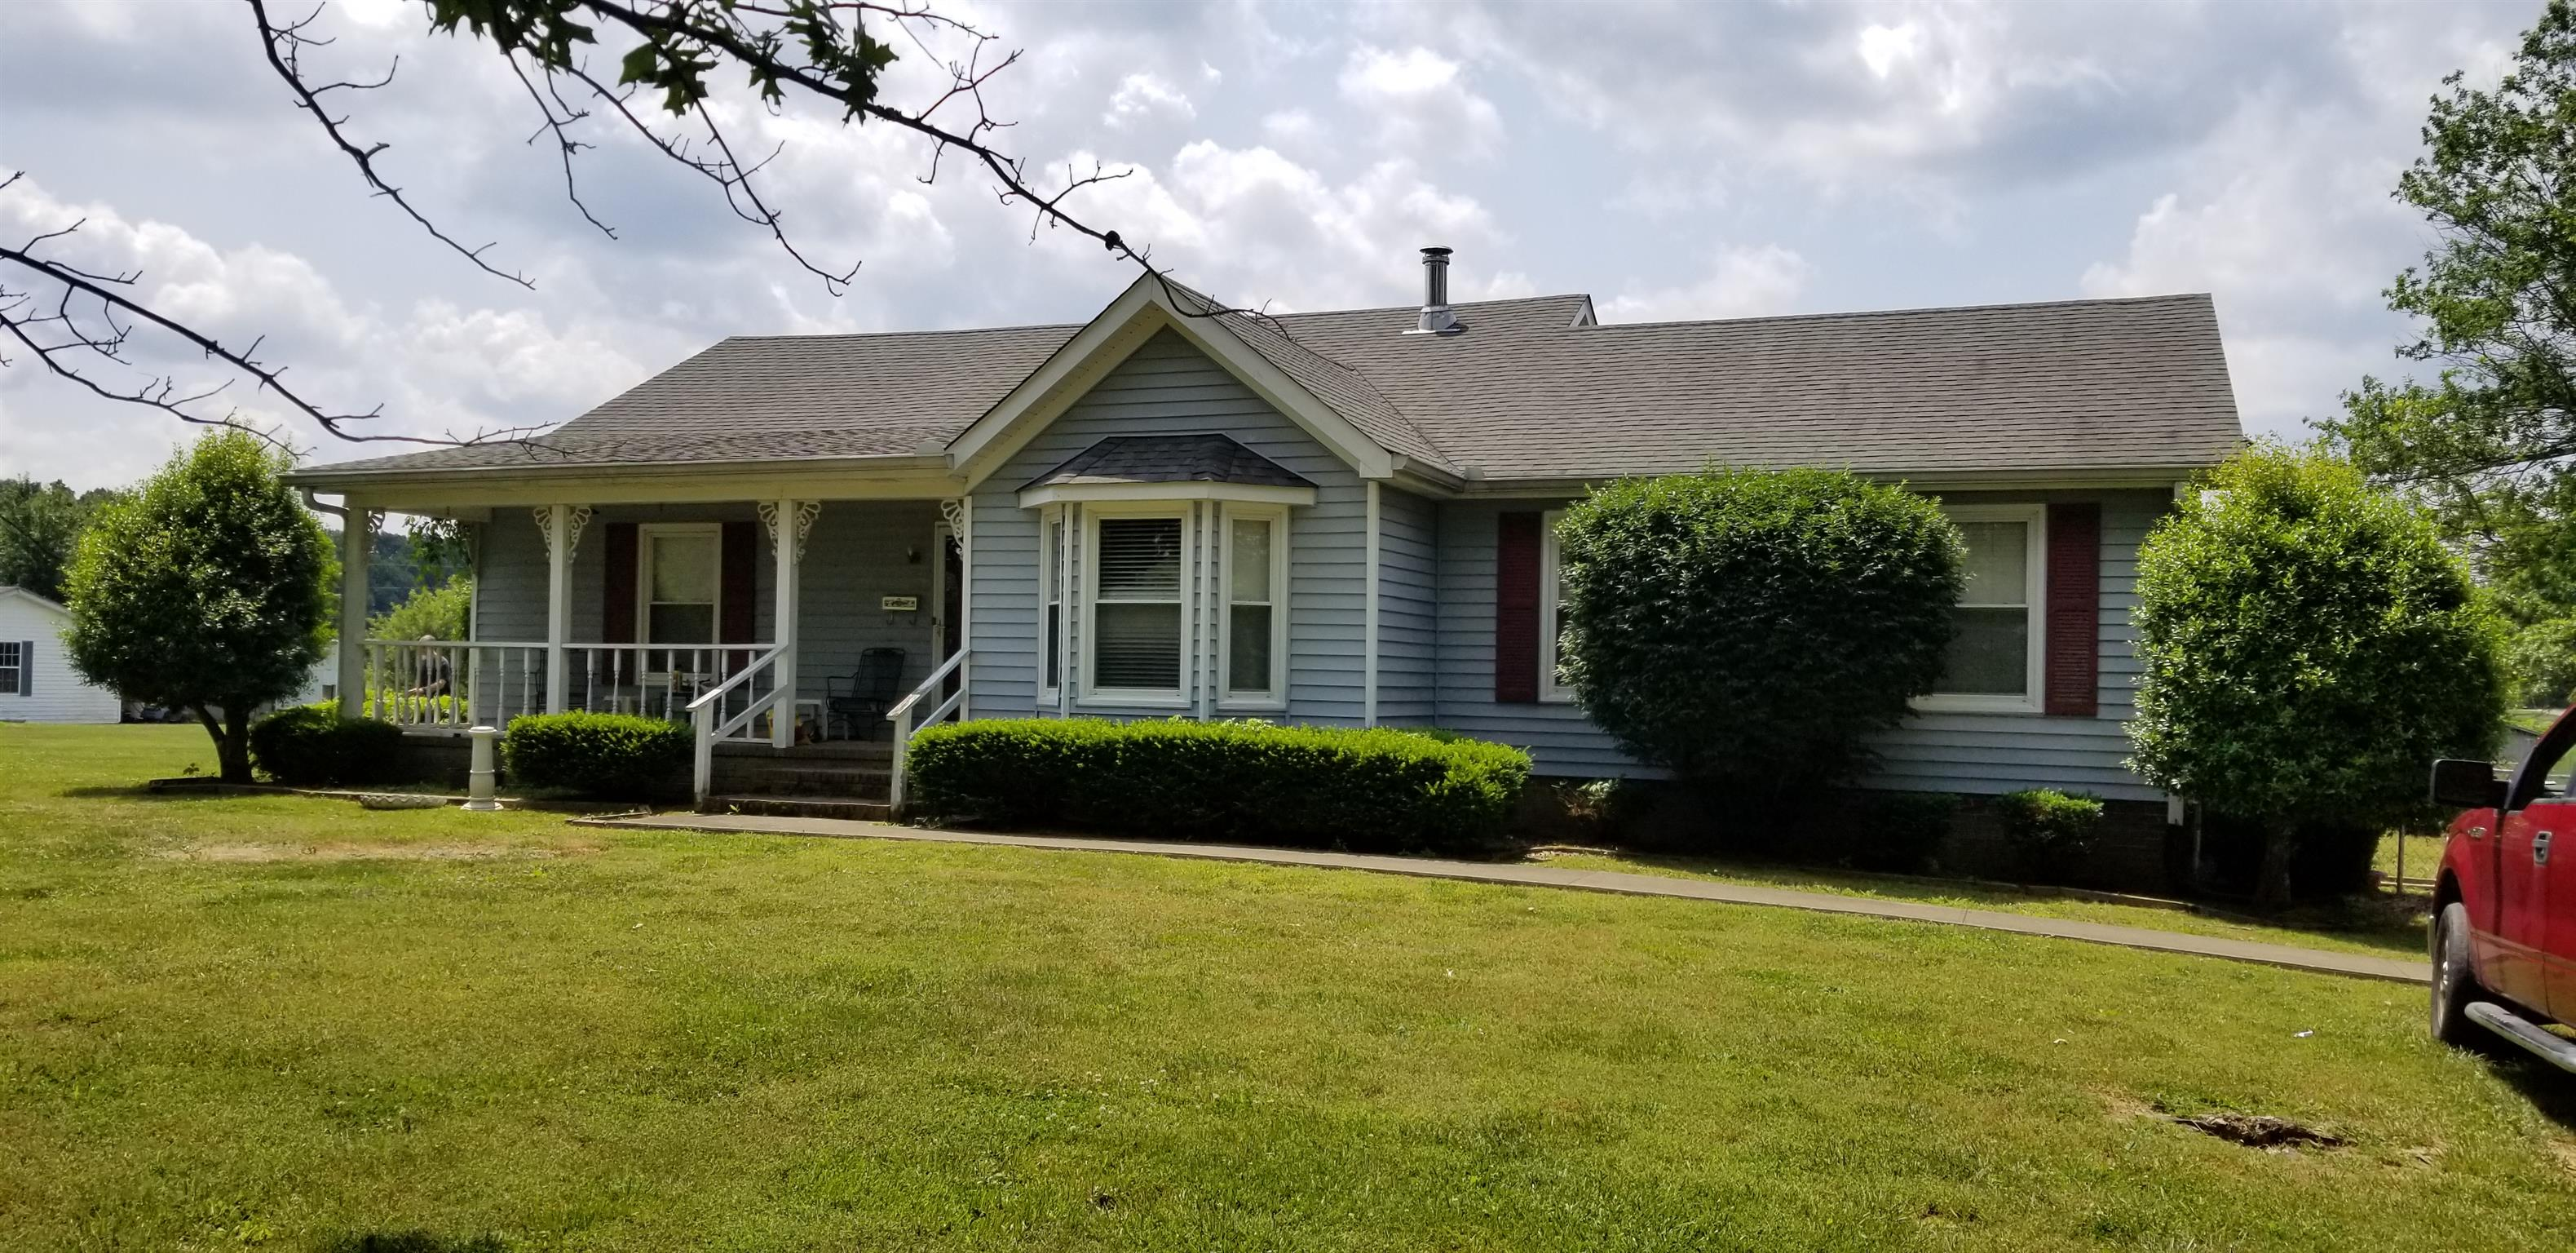 1335 Pee Dee Branch Rd, Cottontown, TN 37048 - Cottontown, TN real estate listing